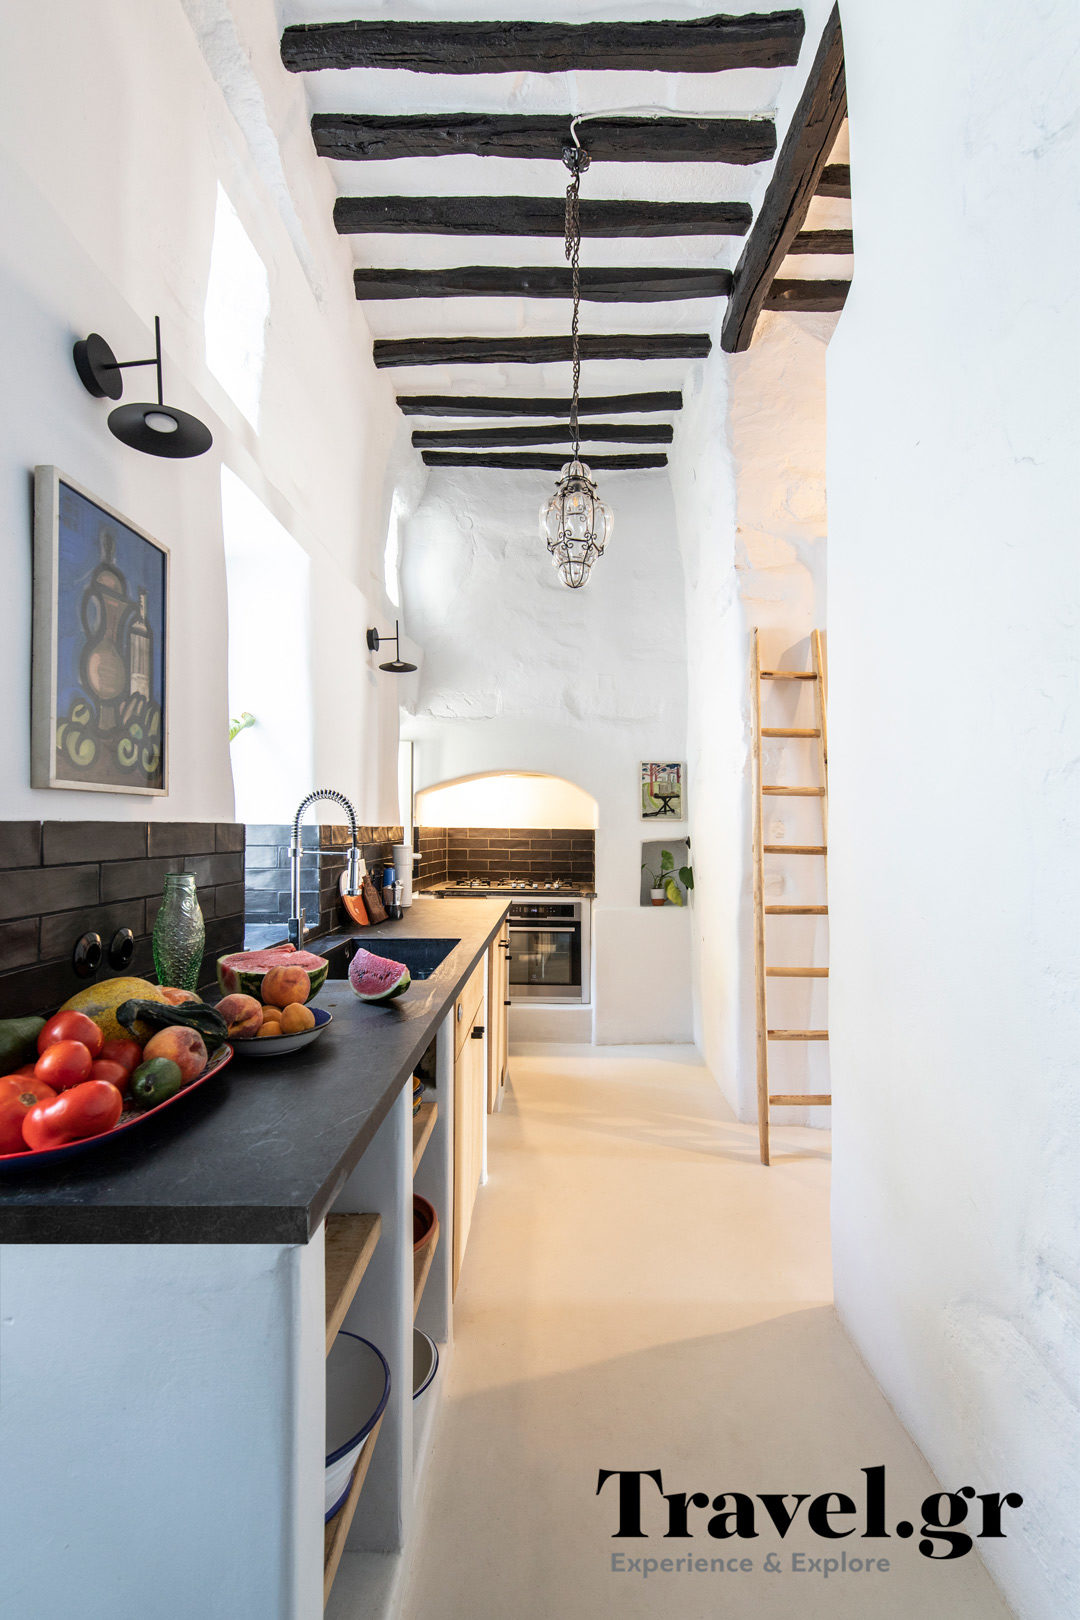 Travel.gr – House and Store in Tinos